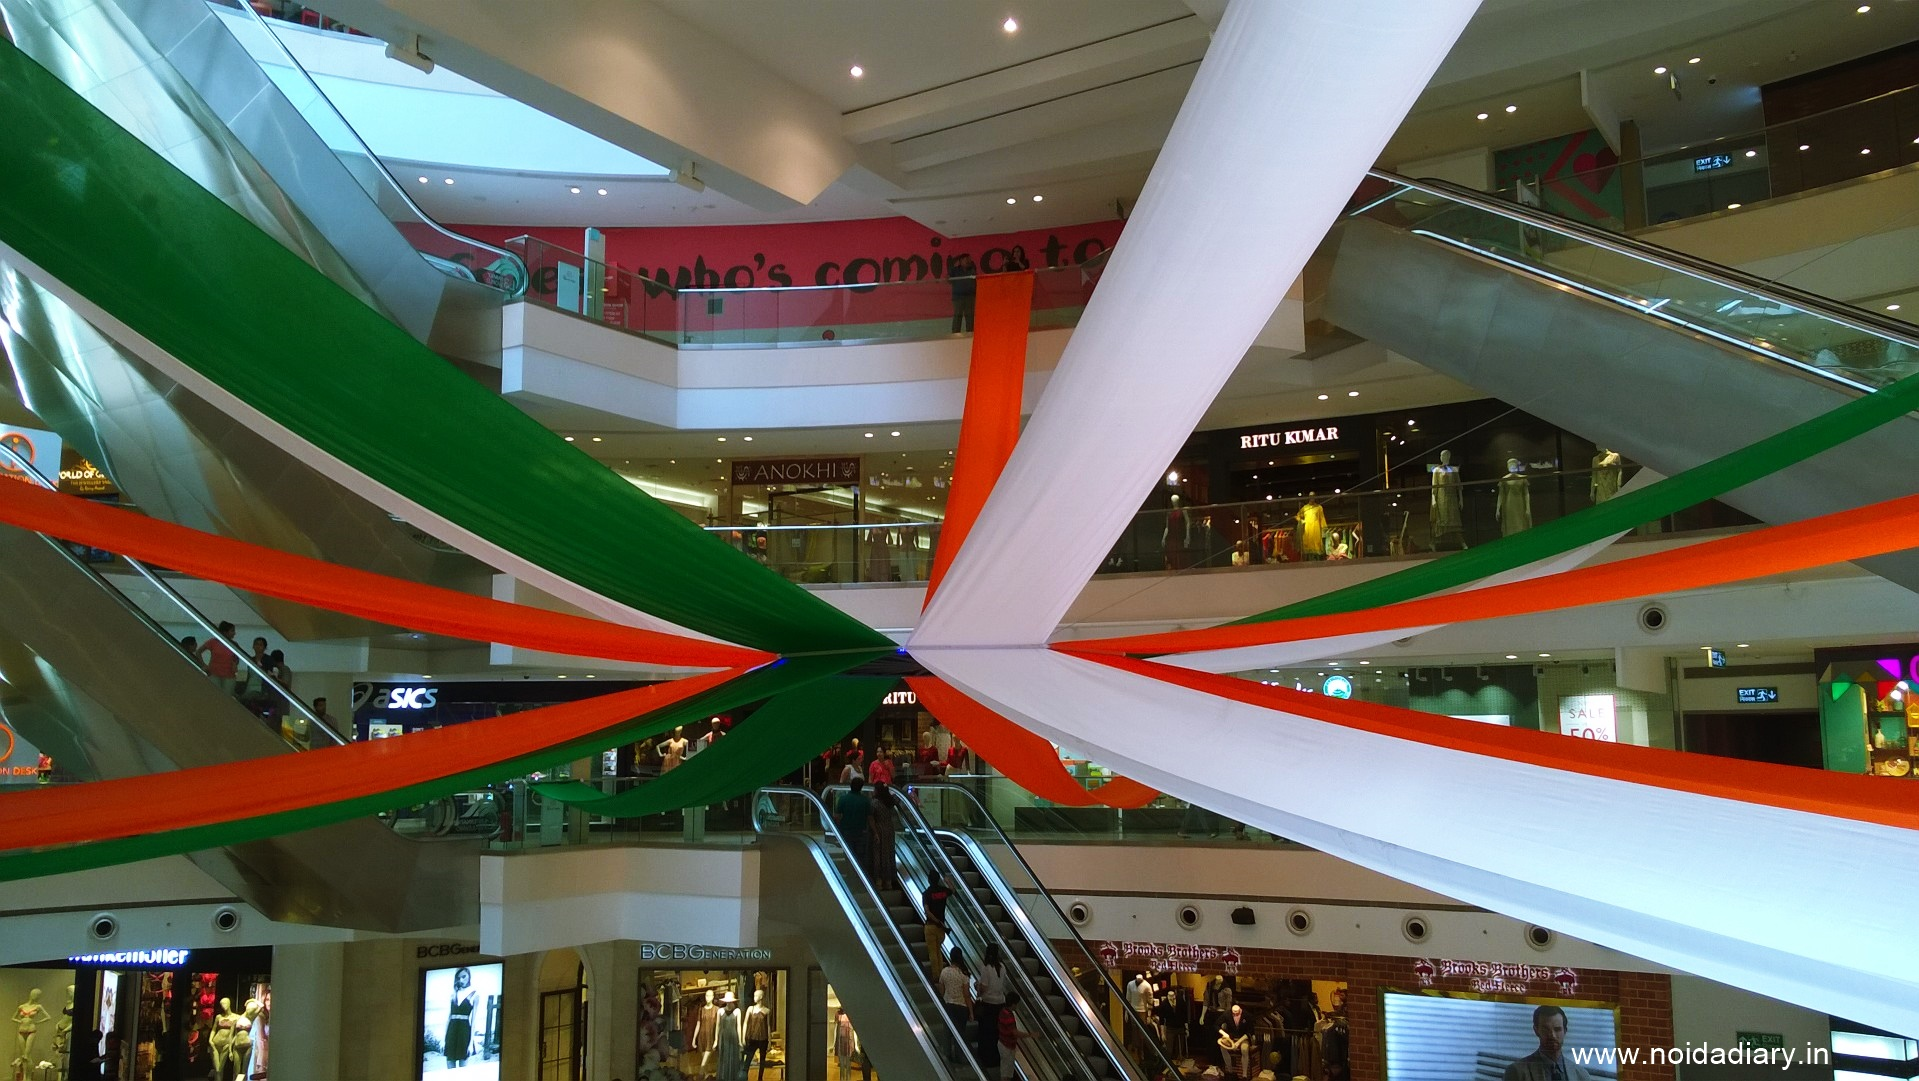 Noida Diary: Independence Day Decor at DLF Mall of India, Noida